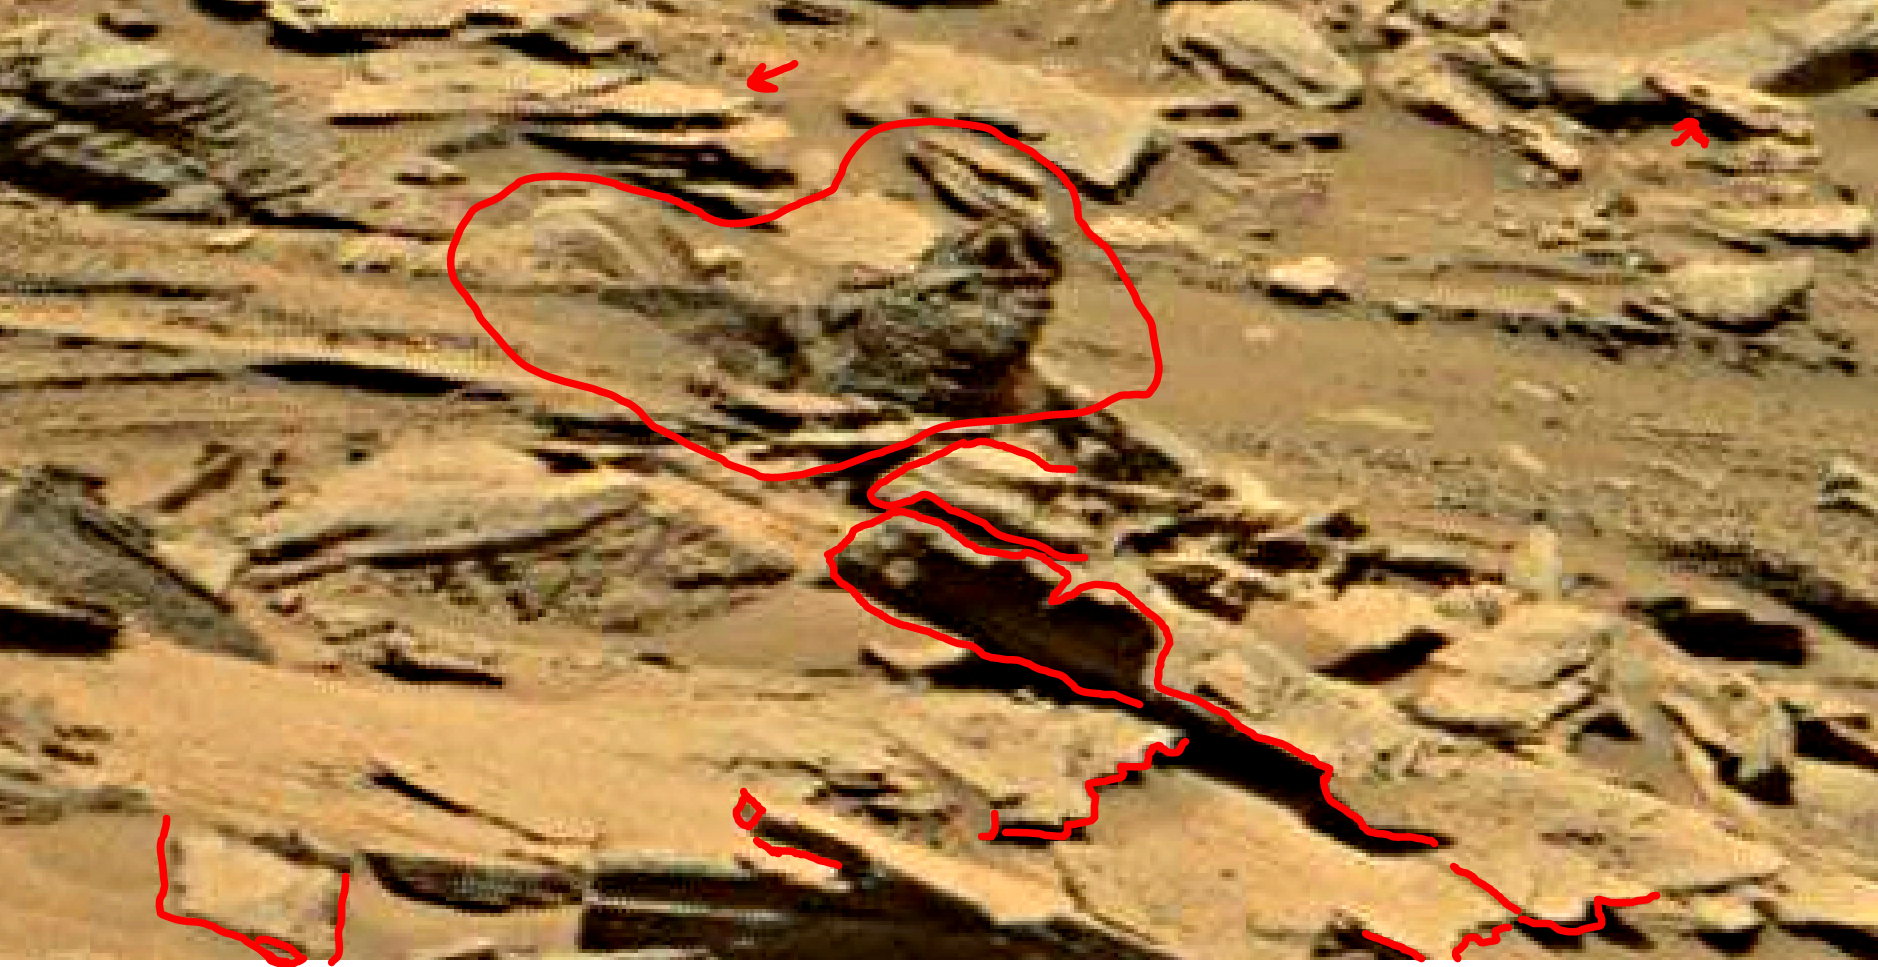 mars sol 1353 anomaly-artifacts 28a1 was life on mars